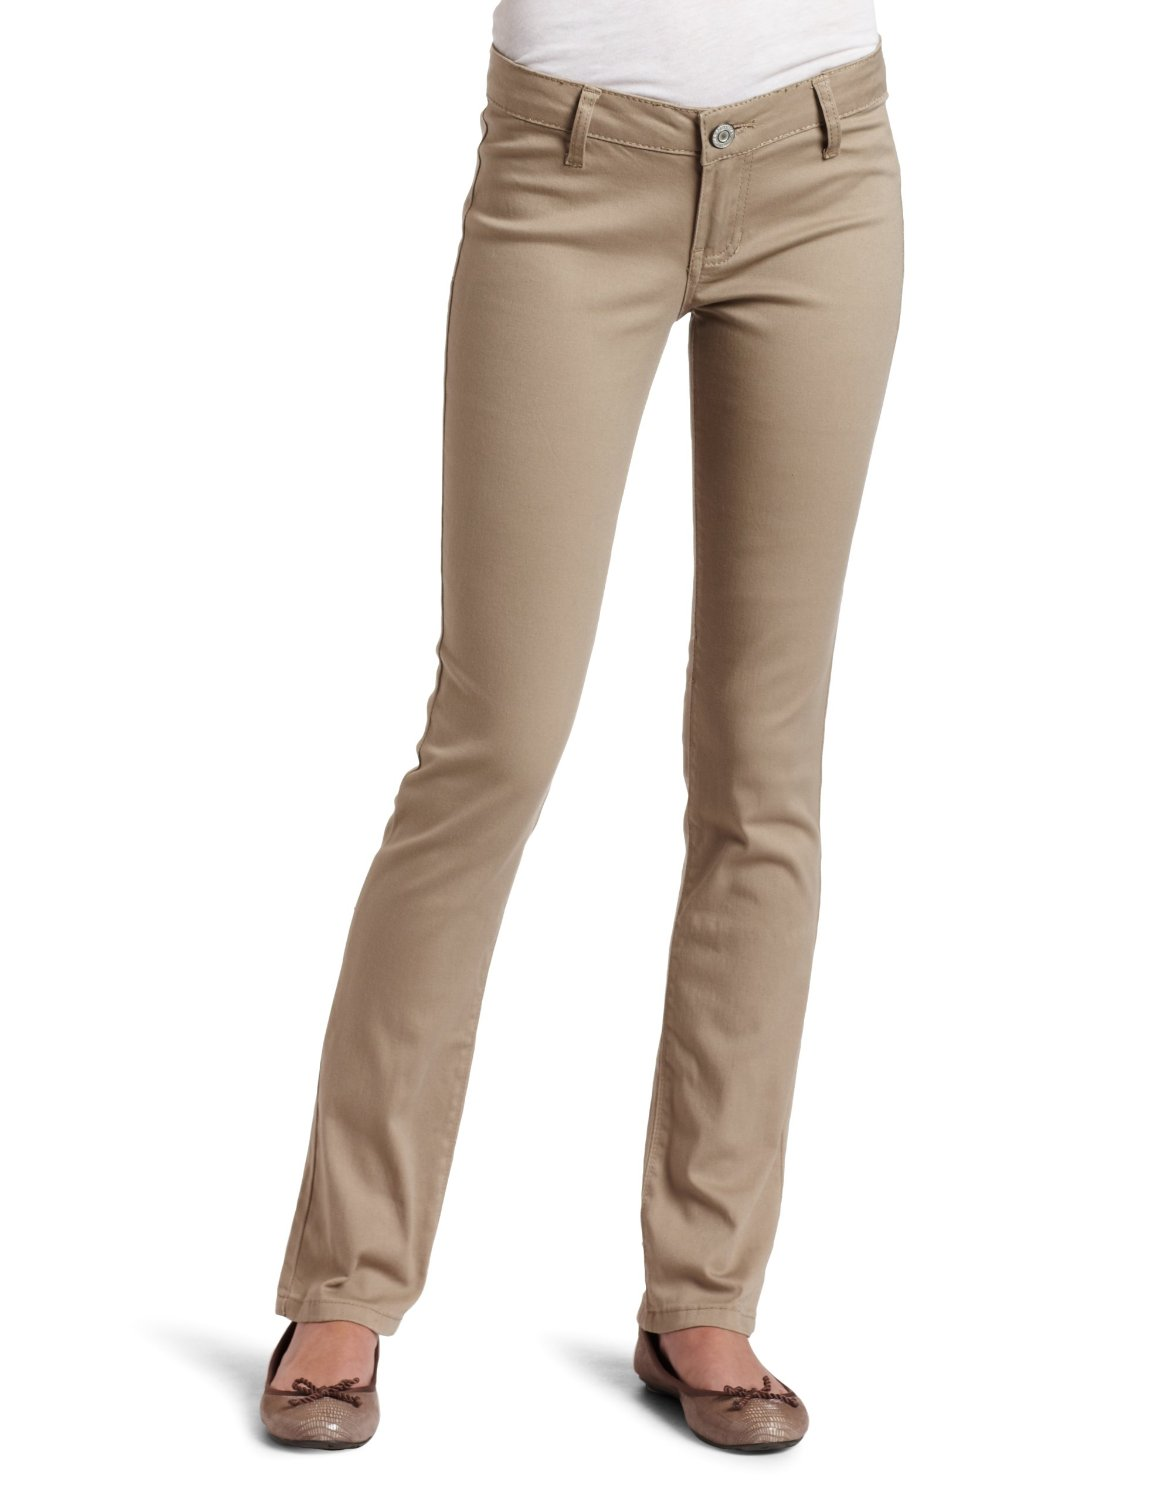 Find great deals on eBay for cheap women pants. Shop with confidence.